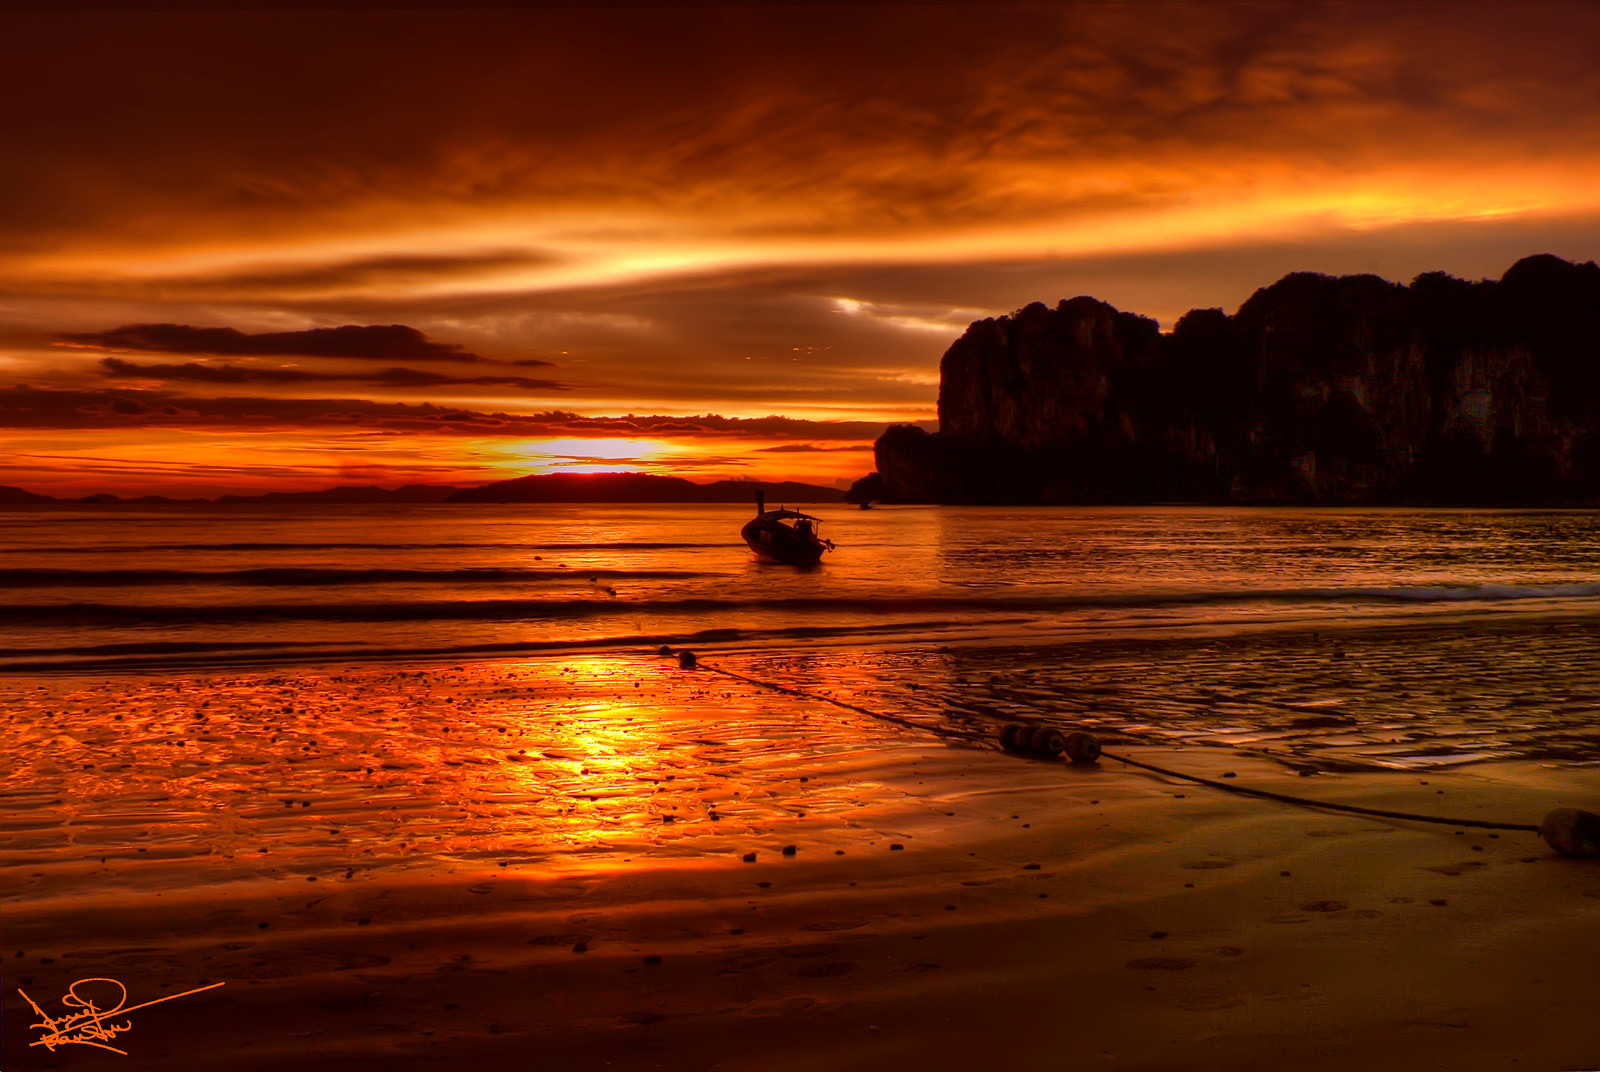 Railey Beach at Sunset, Thailand